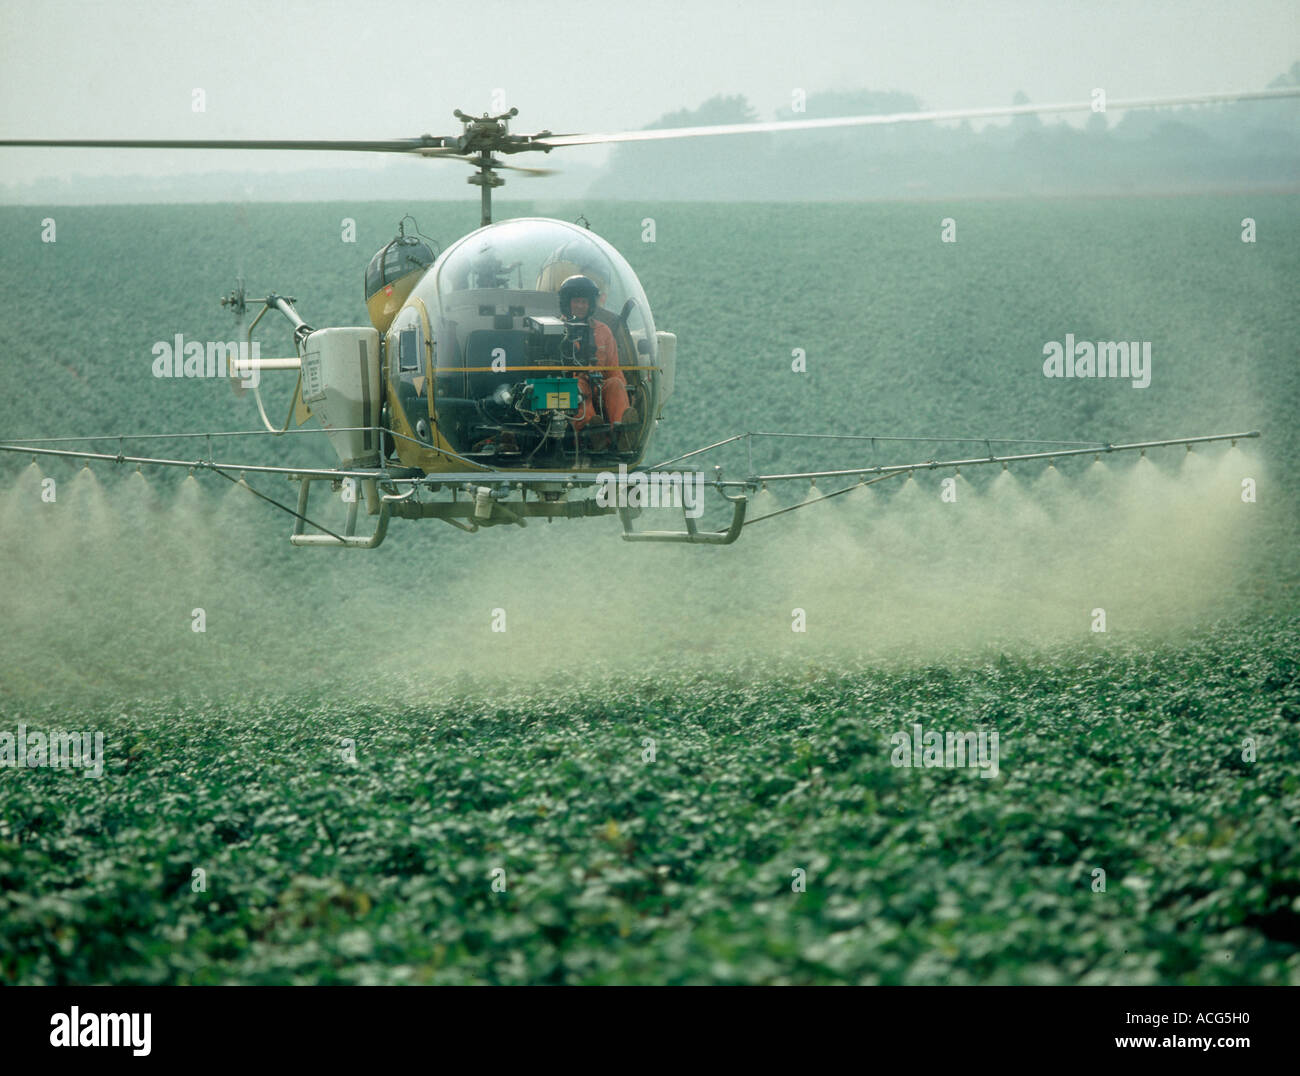 helicopter crop spraying with Stock Photo Helicopter Spraying Maturing Potato Crop With Trace Elements And A 7513039 on New Report Says Global Gmo Crop Cultivation Is Declining Worldwide Most Production  es From Just Six Countries as well Watch additionally Stock Photo Helicopter Spraying Maturing Potato Crop With Trace Elements And A 7513039 also Japan Made Variant Series Helicopter further Stock Photo Retired Old Crop Dusting Helicopter Image30018420.